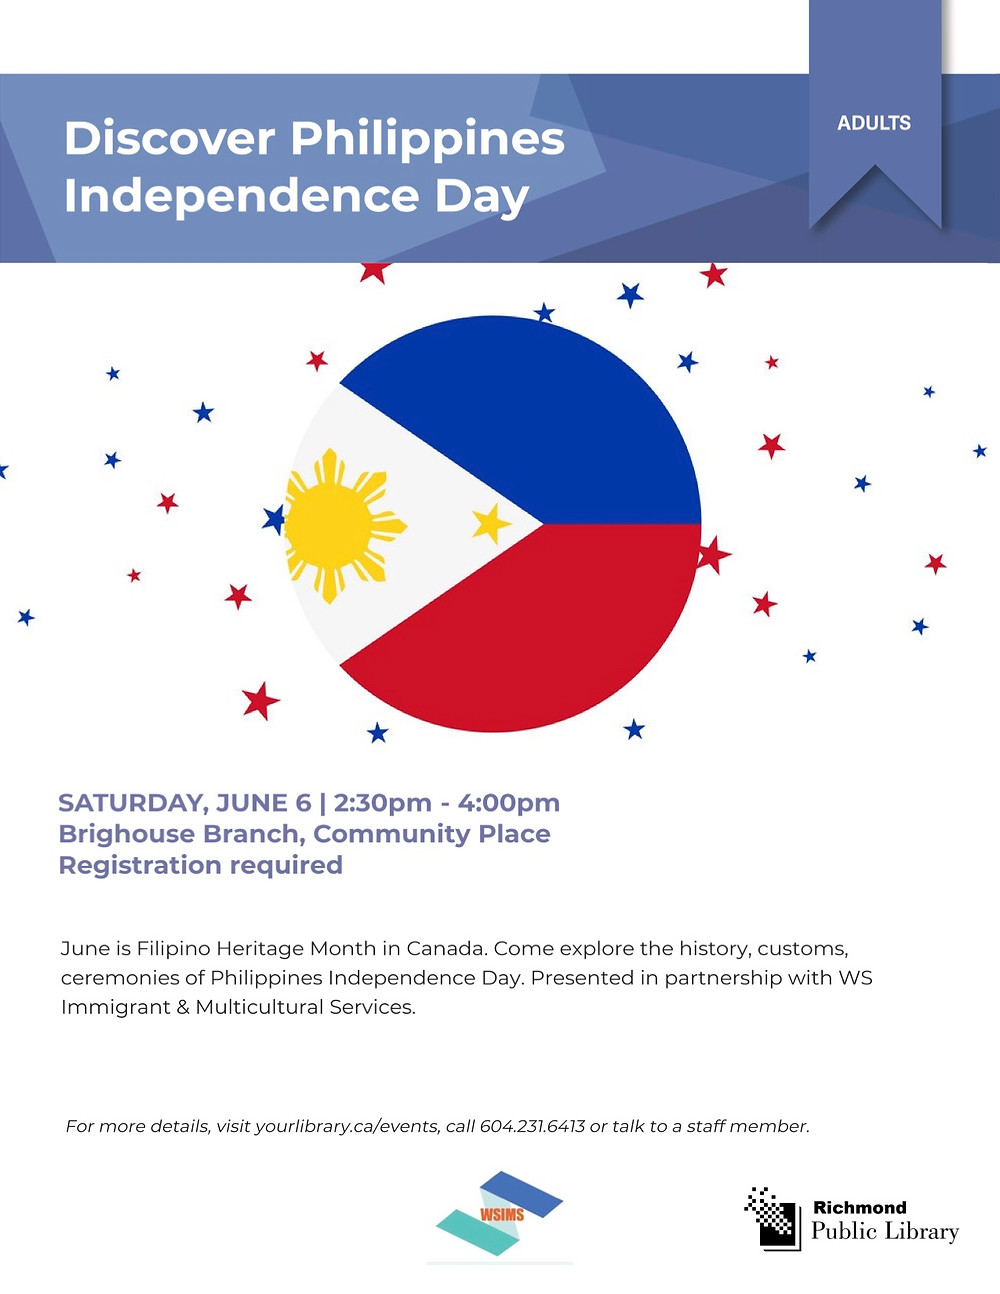 Discover Philippines Independence Day 2020 by WS Immigrant and Multicultural Services Society and Richmond Public Library